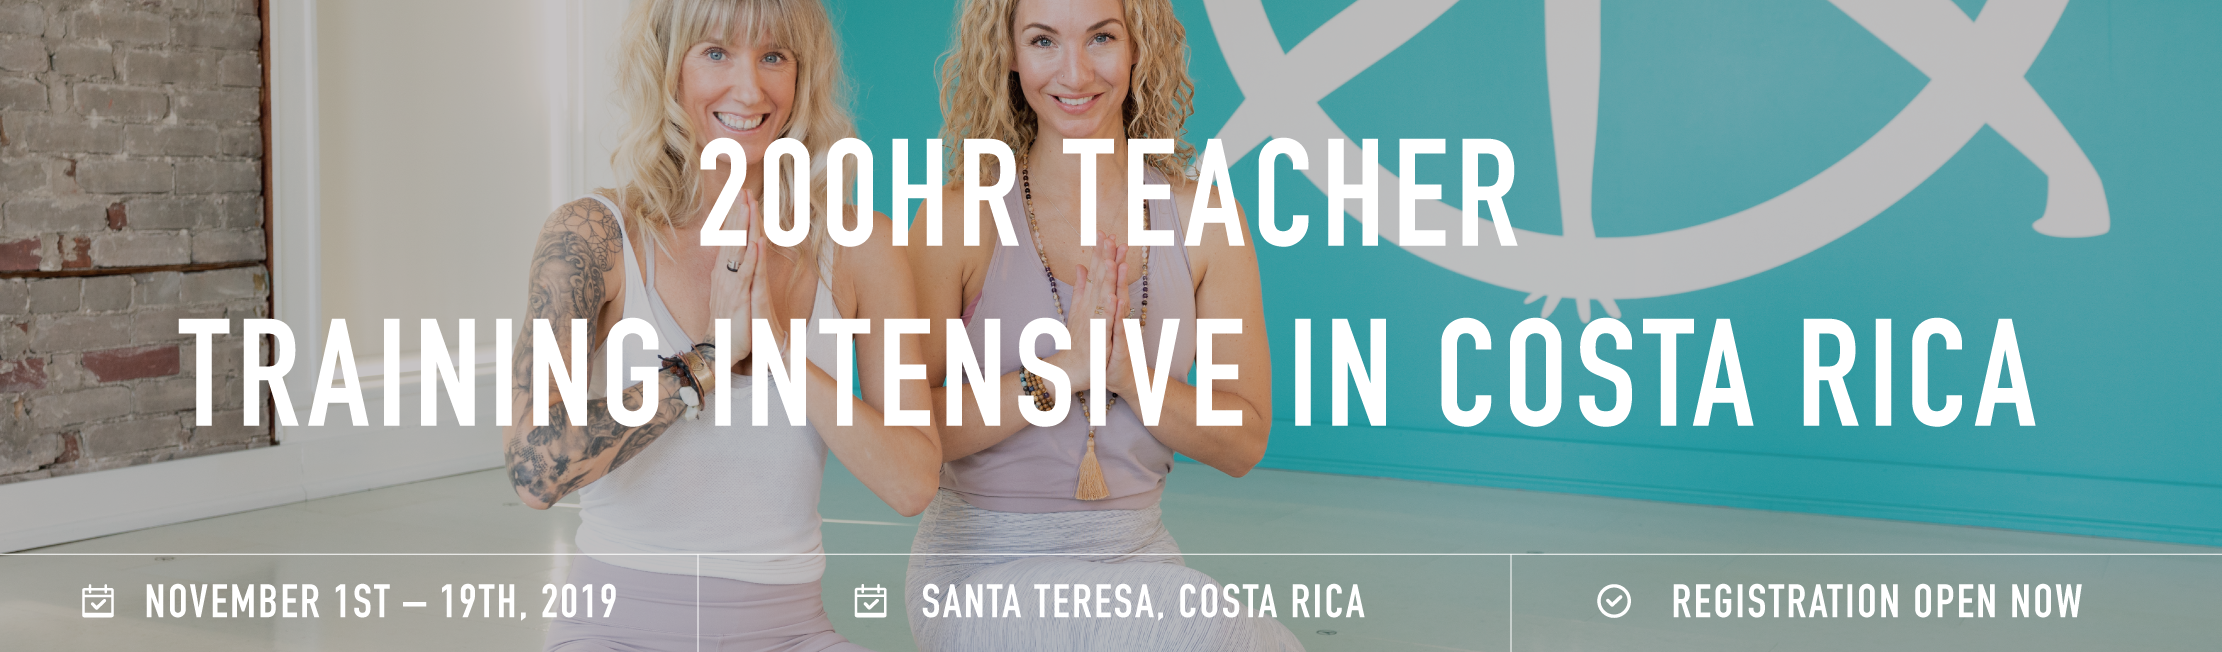 Costa rica teacher training banner5  1